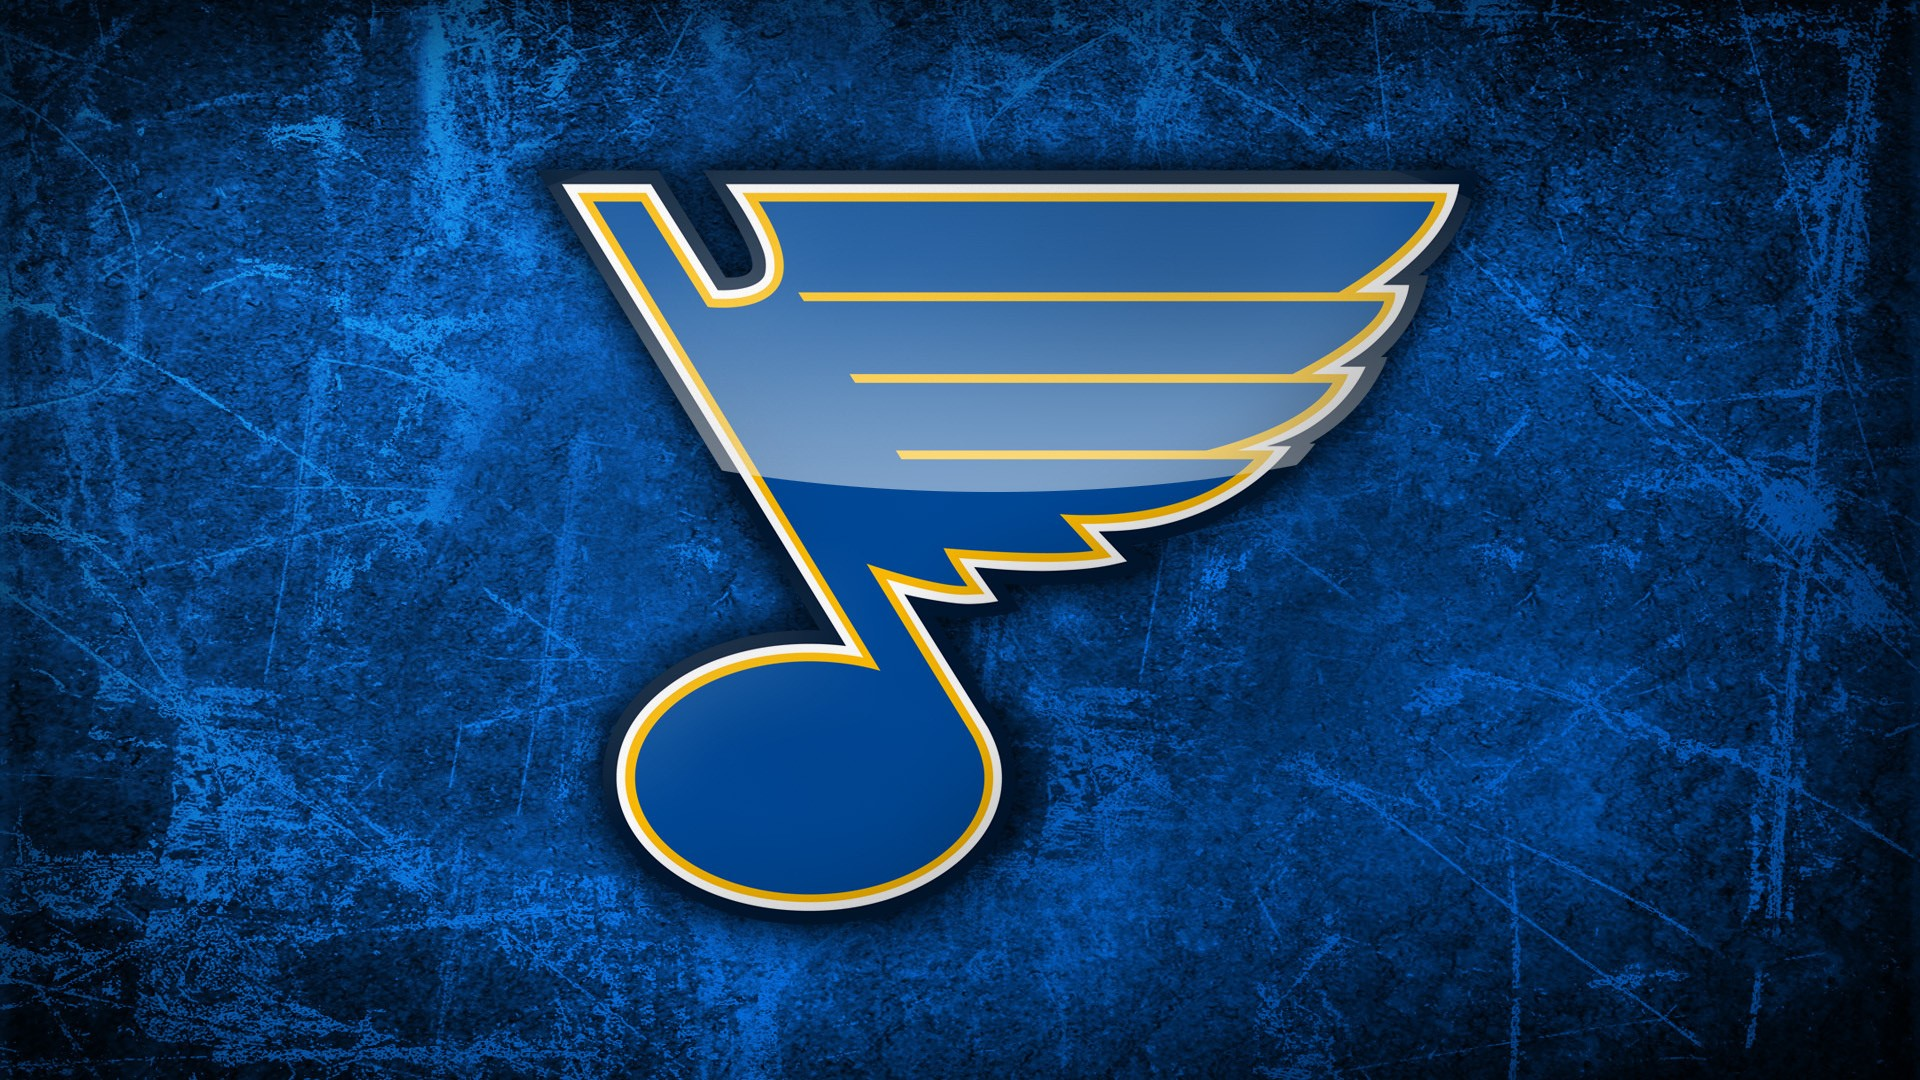 NHL StLouis Blues Full HD Wallpaper And Background Image